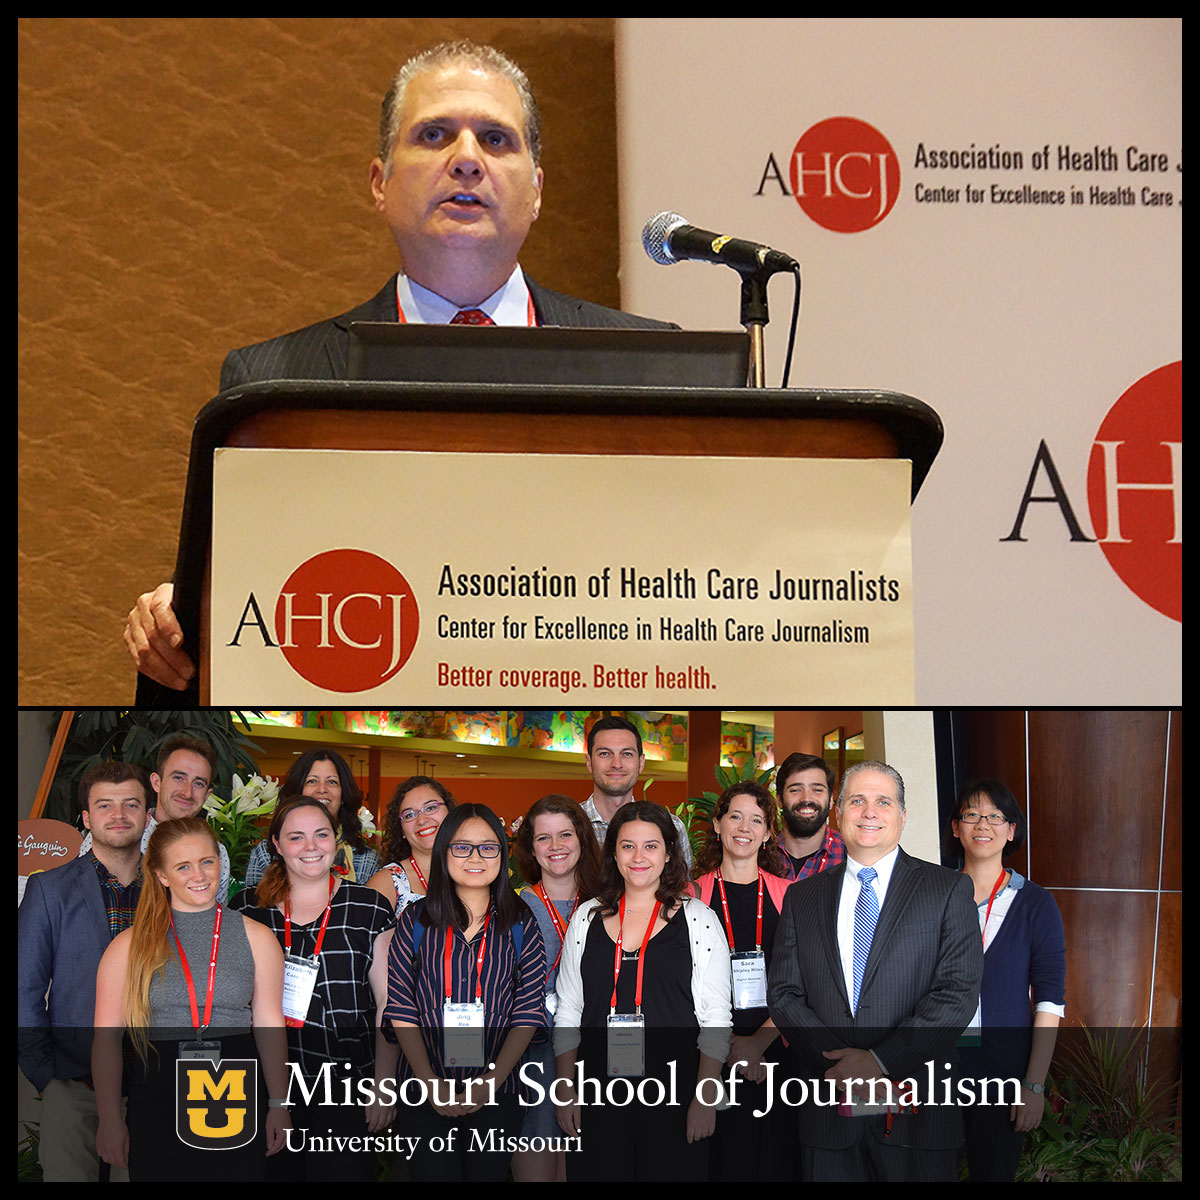 Health Journalism 2017 in Orlando, Florida